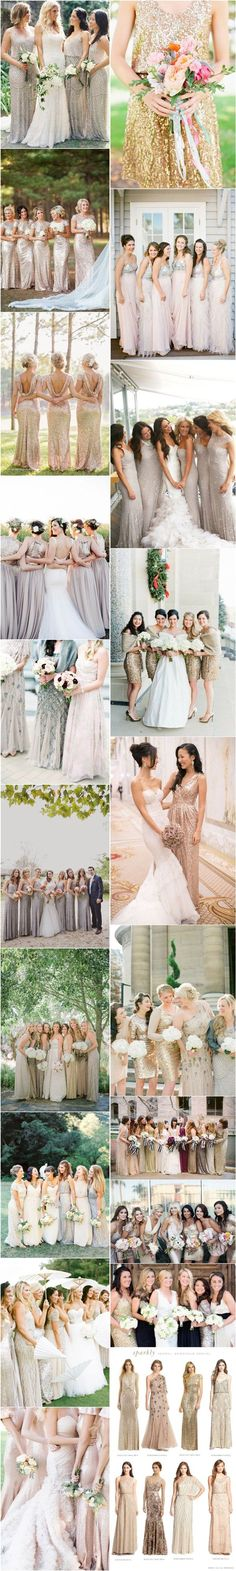 ¡Hermosa #tendencia en #bodas para este año! #Wedding #Trends #Ideas